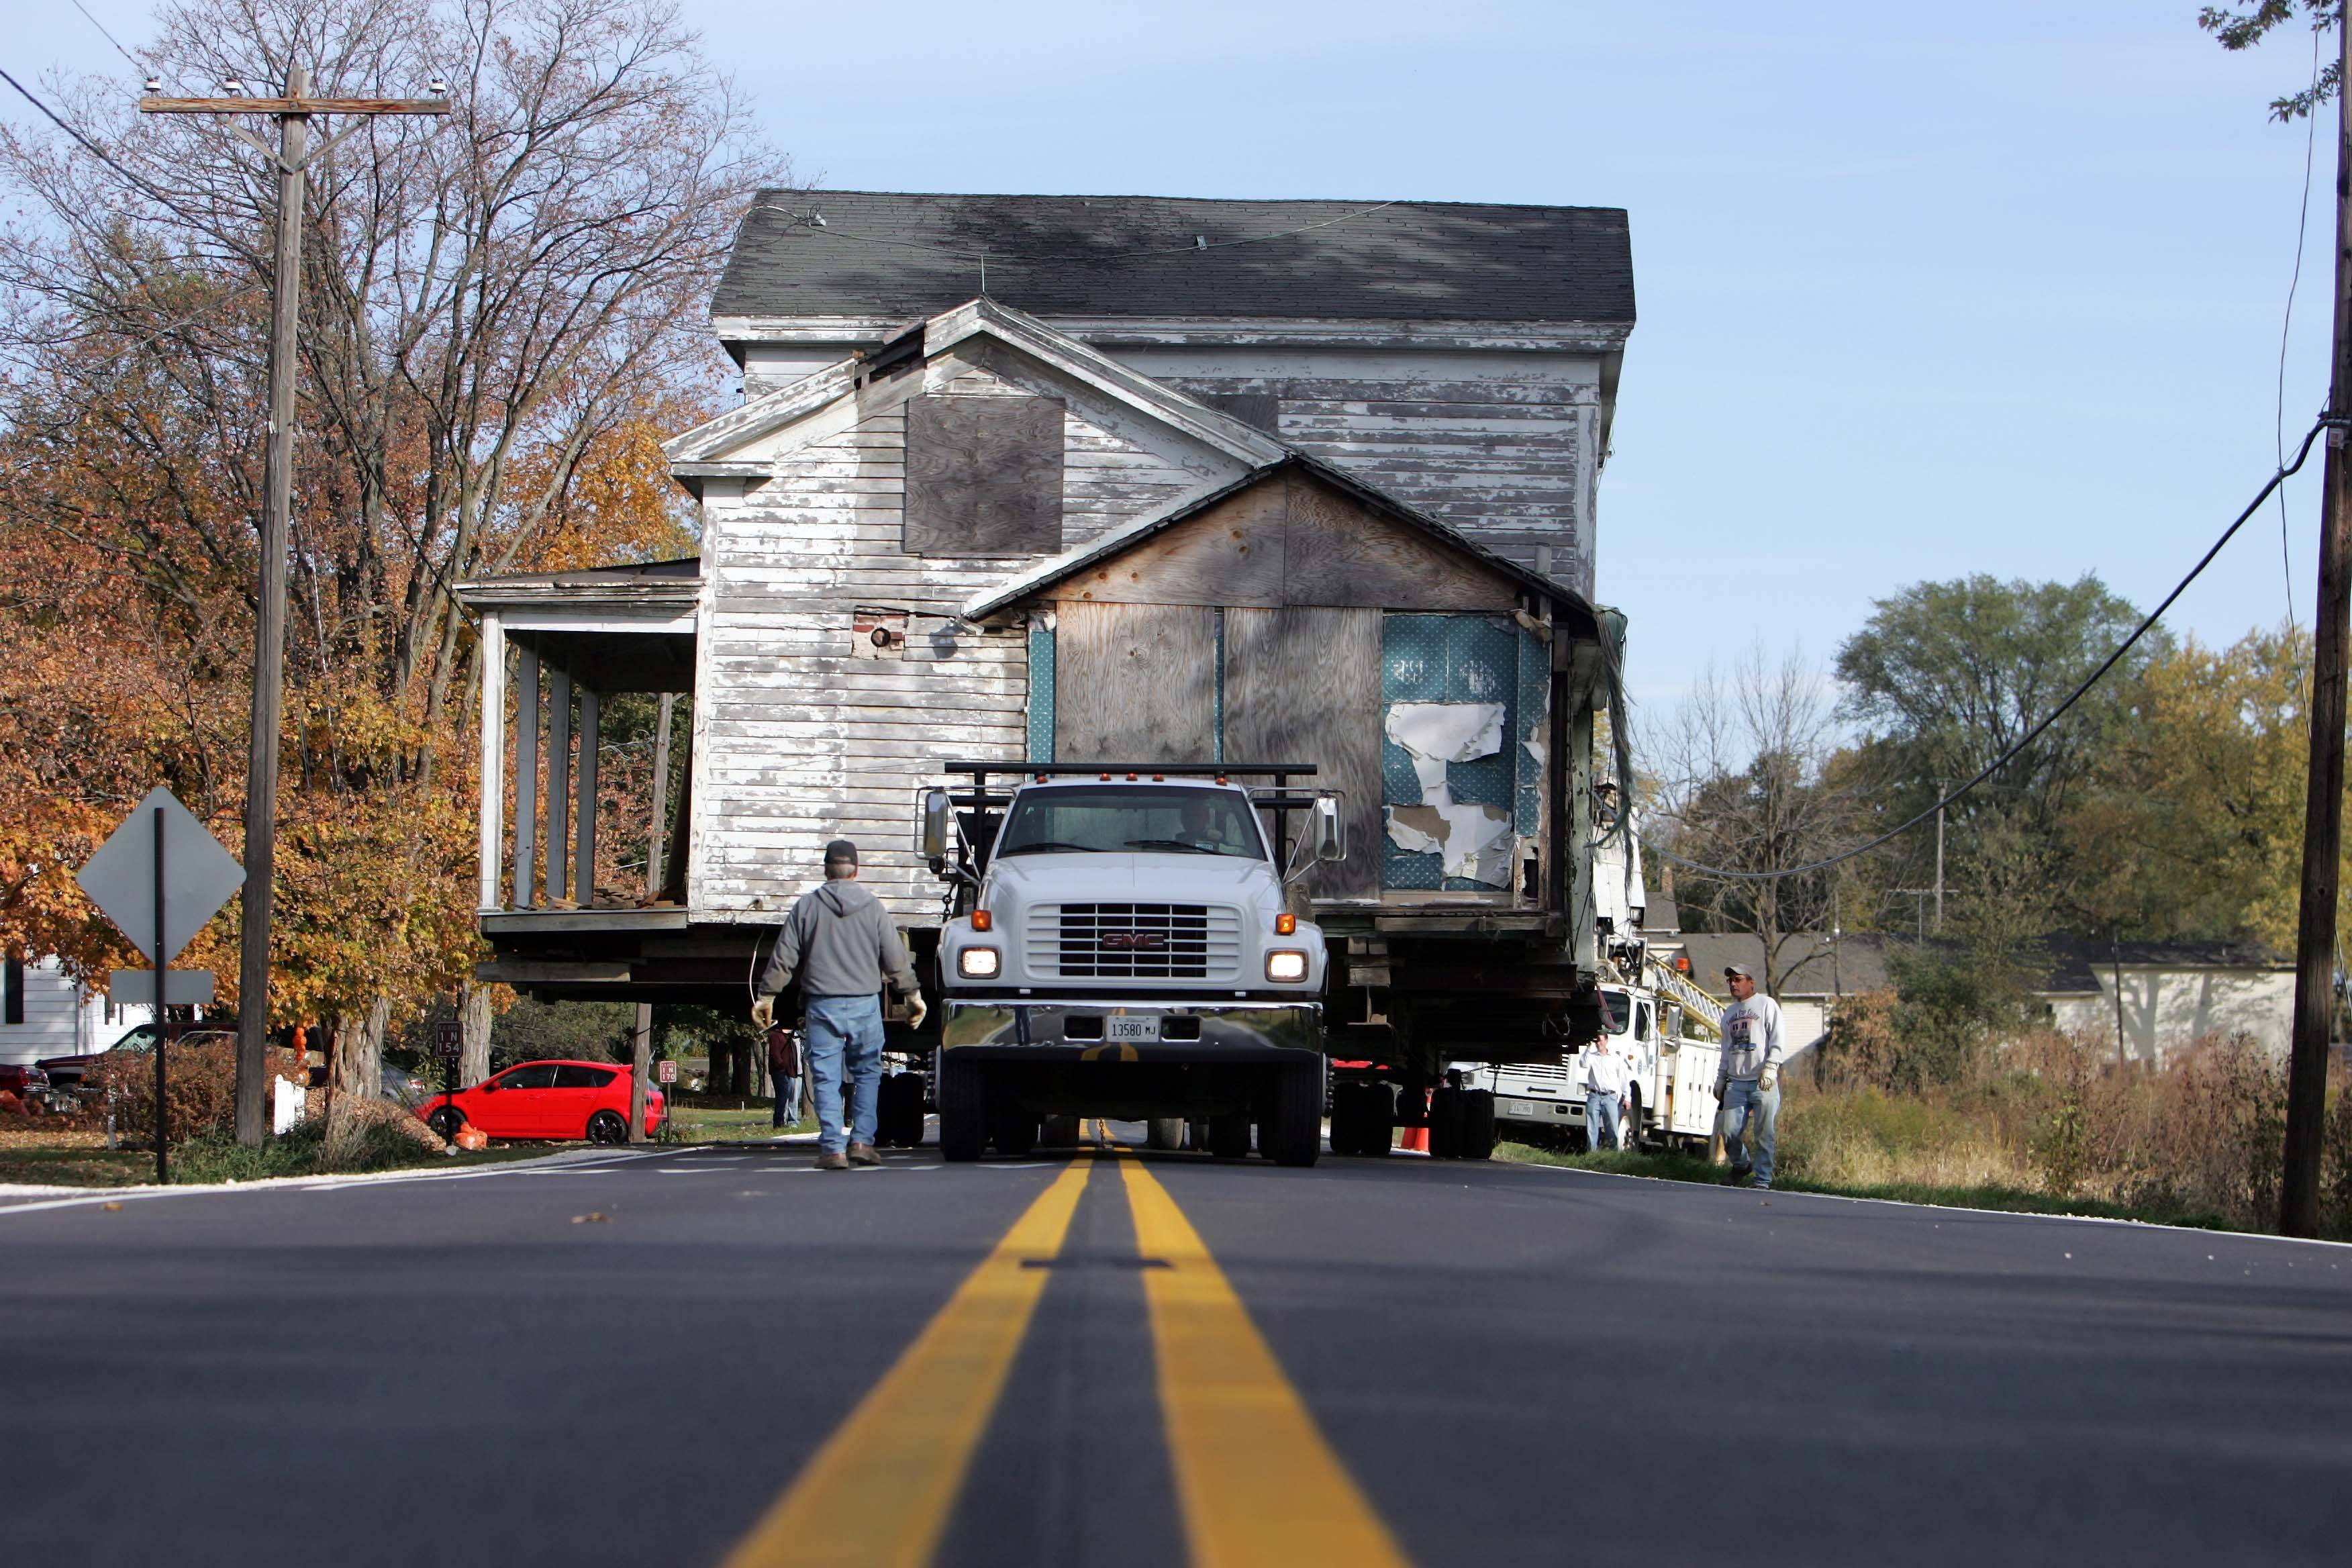 "For the second time in a little more than two and a half years, the more than 30-ton home has moved to a new location. Originally close to the new train station in La Fox the home was moved to lot on La Fox Road. Dan Larsen, who bought the house for a dollar is planning on turning it into a guest house behind his La Fox home. ""I'd rather see it in my yard than see it out there"" said Larsen who hopes to have the exterior finished by winter. The 1849 home is believed to be the oldest frame structure in Kane County."